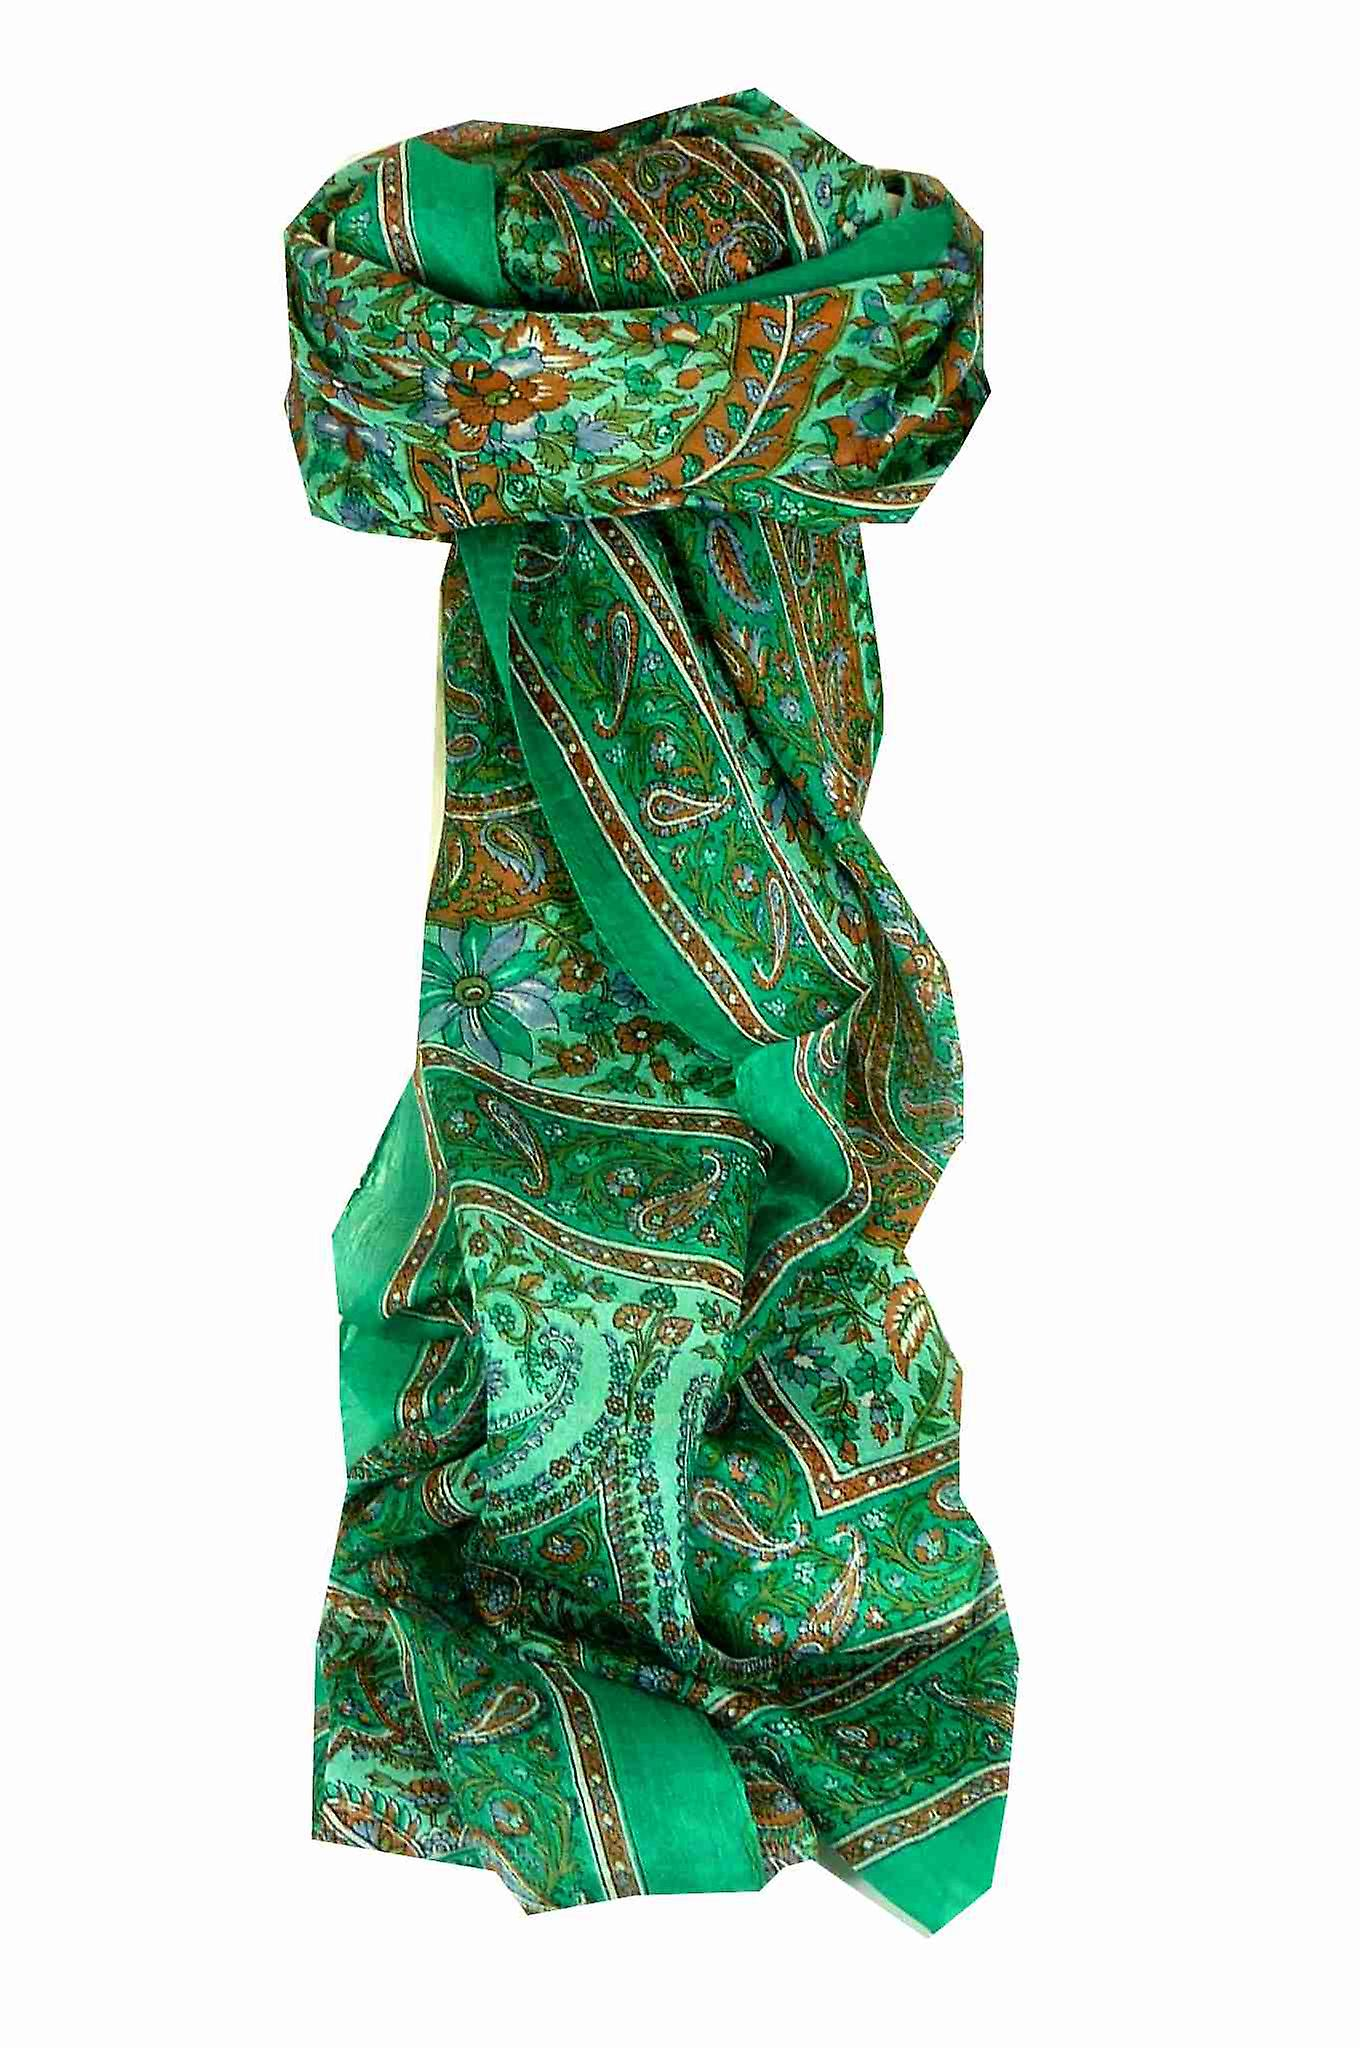 Mulberry Silk Traditional Long Scarf Purna Green by Pashmina & Silk